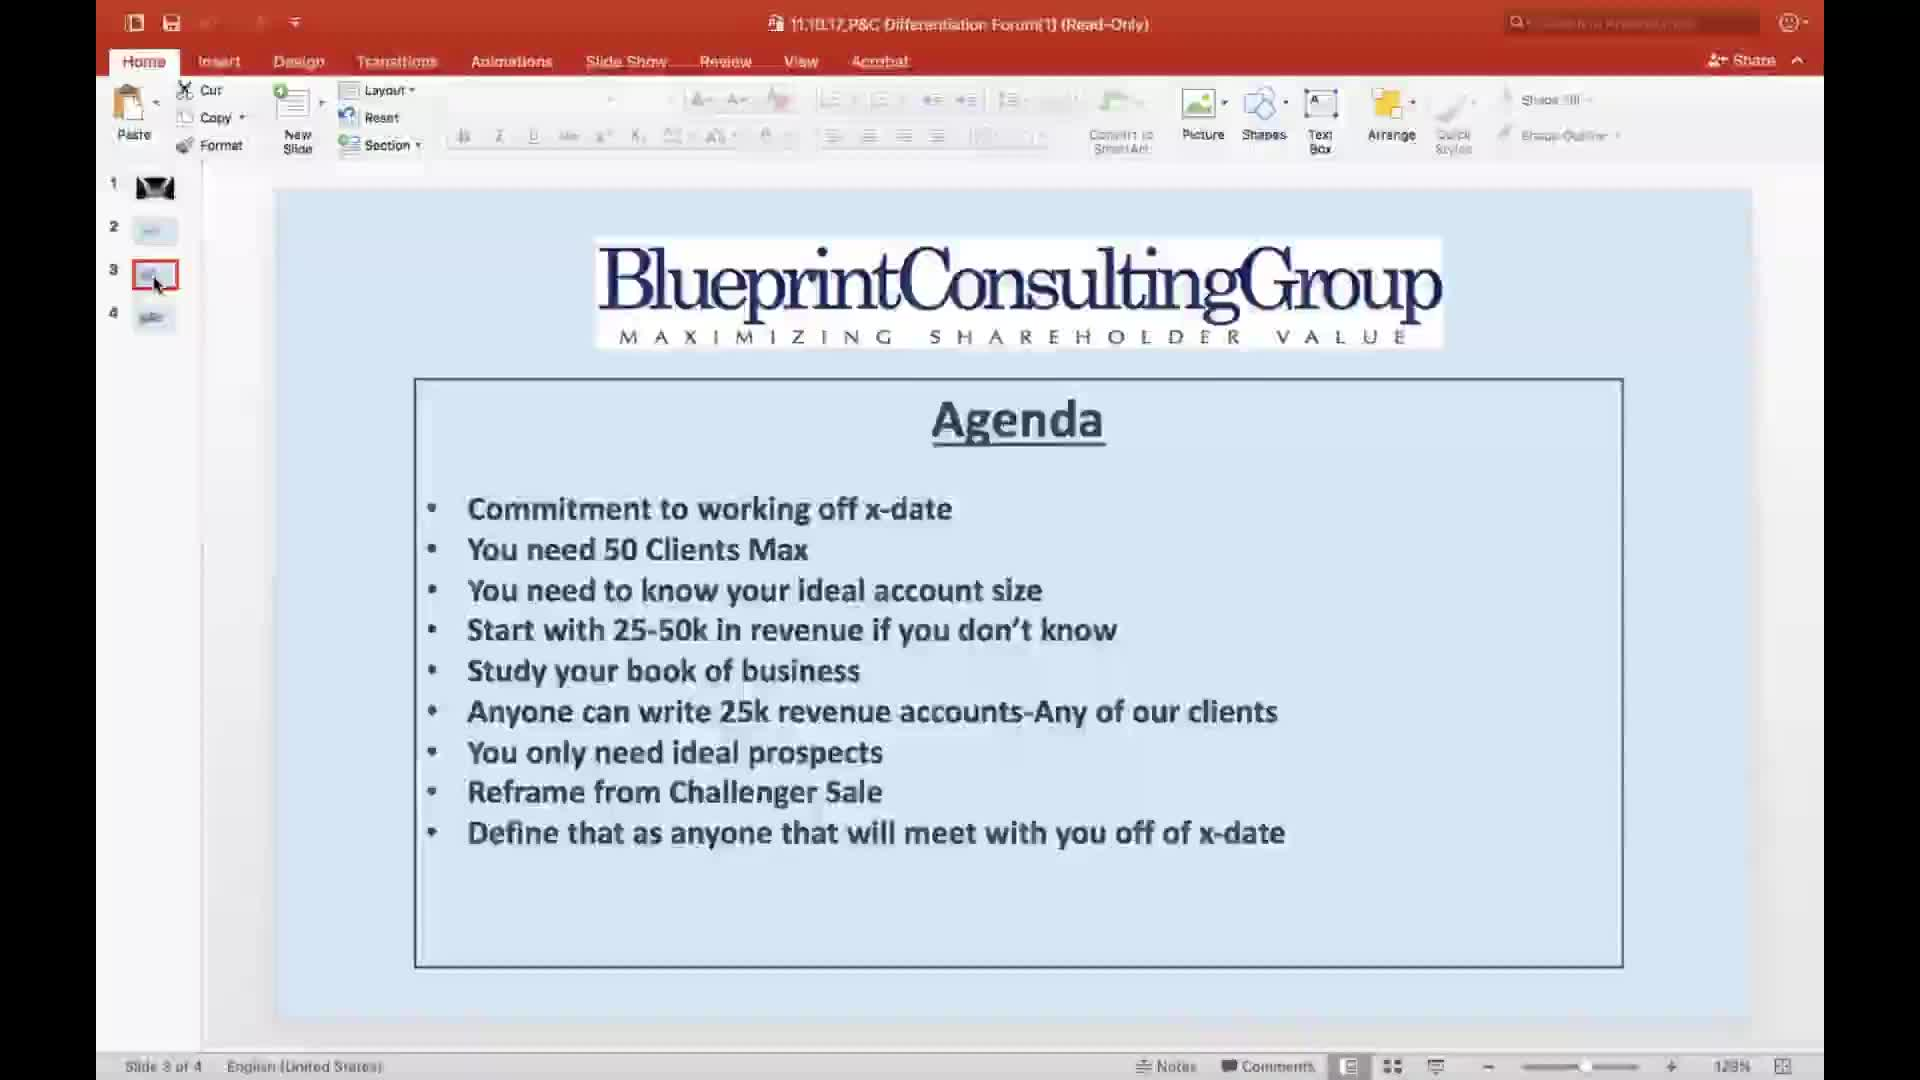 Blueprint consulting group pc differentiation aug dec 17 malvernweather Choice Image